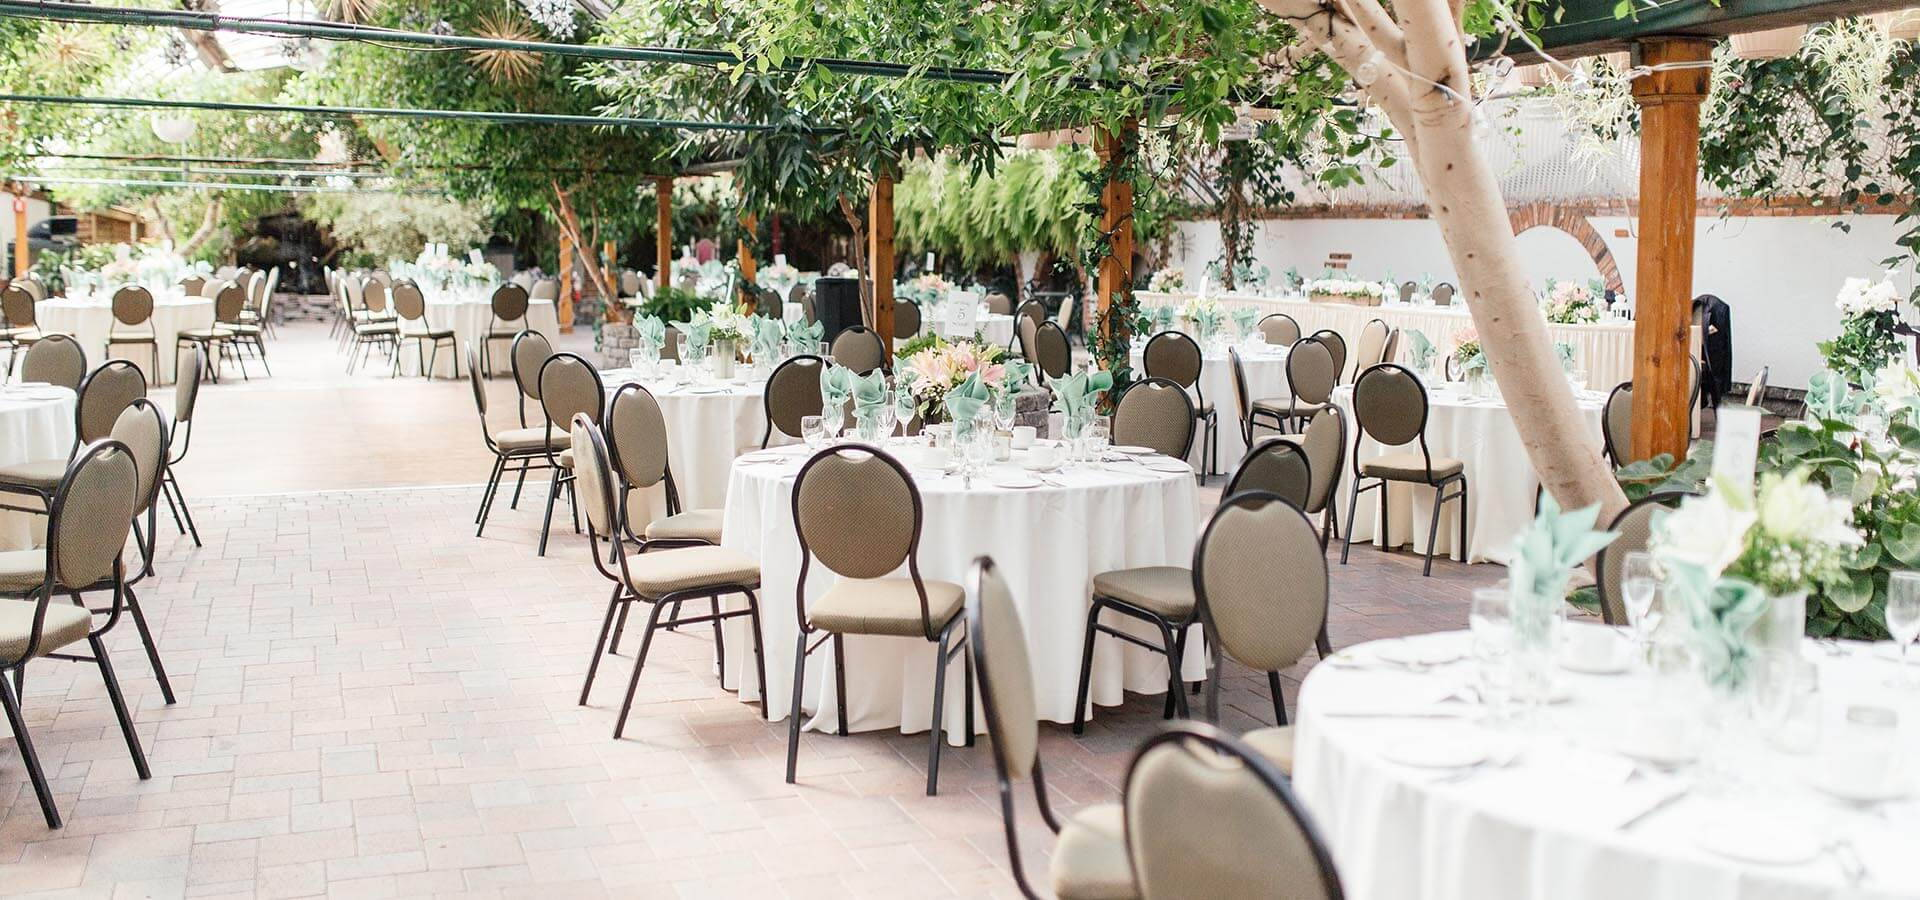 Hero image for Jodie and Olu's Whimsical Wedding at Madsen's Banquet Hall